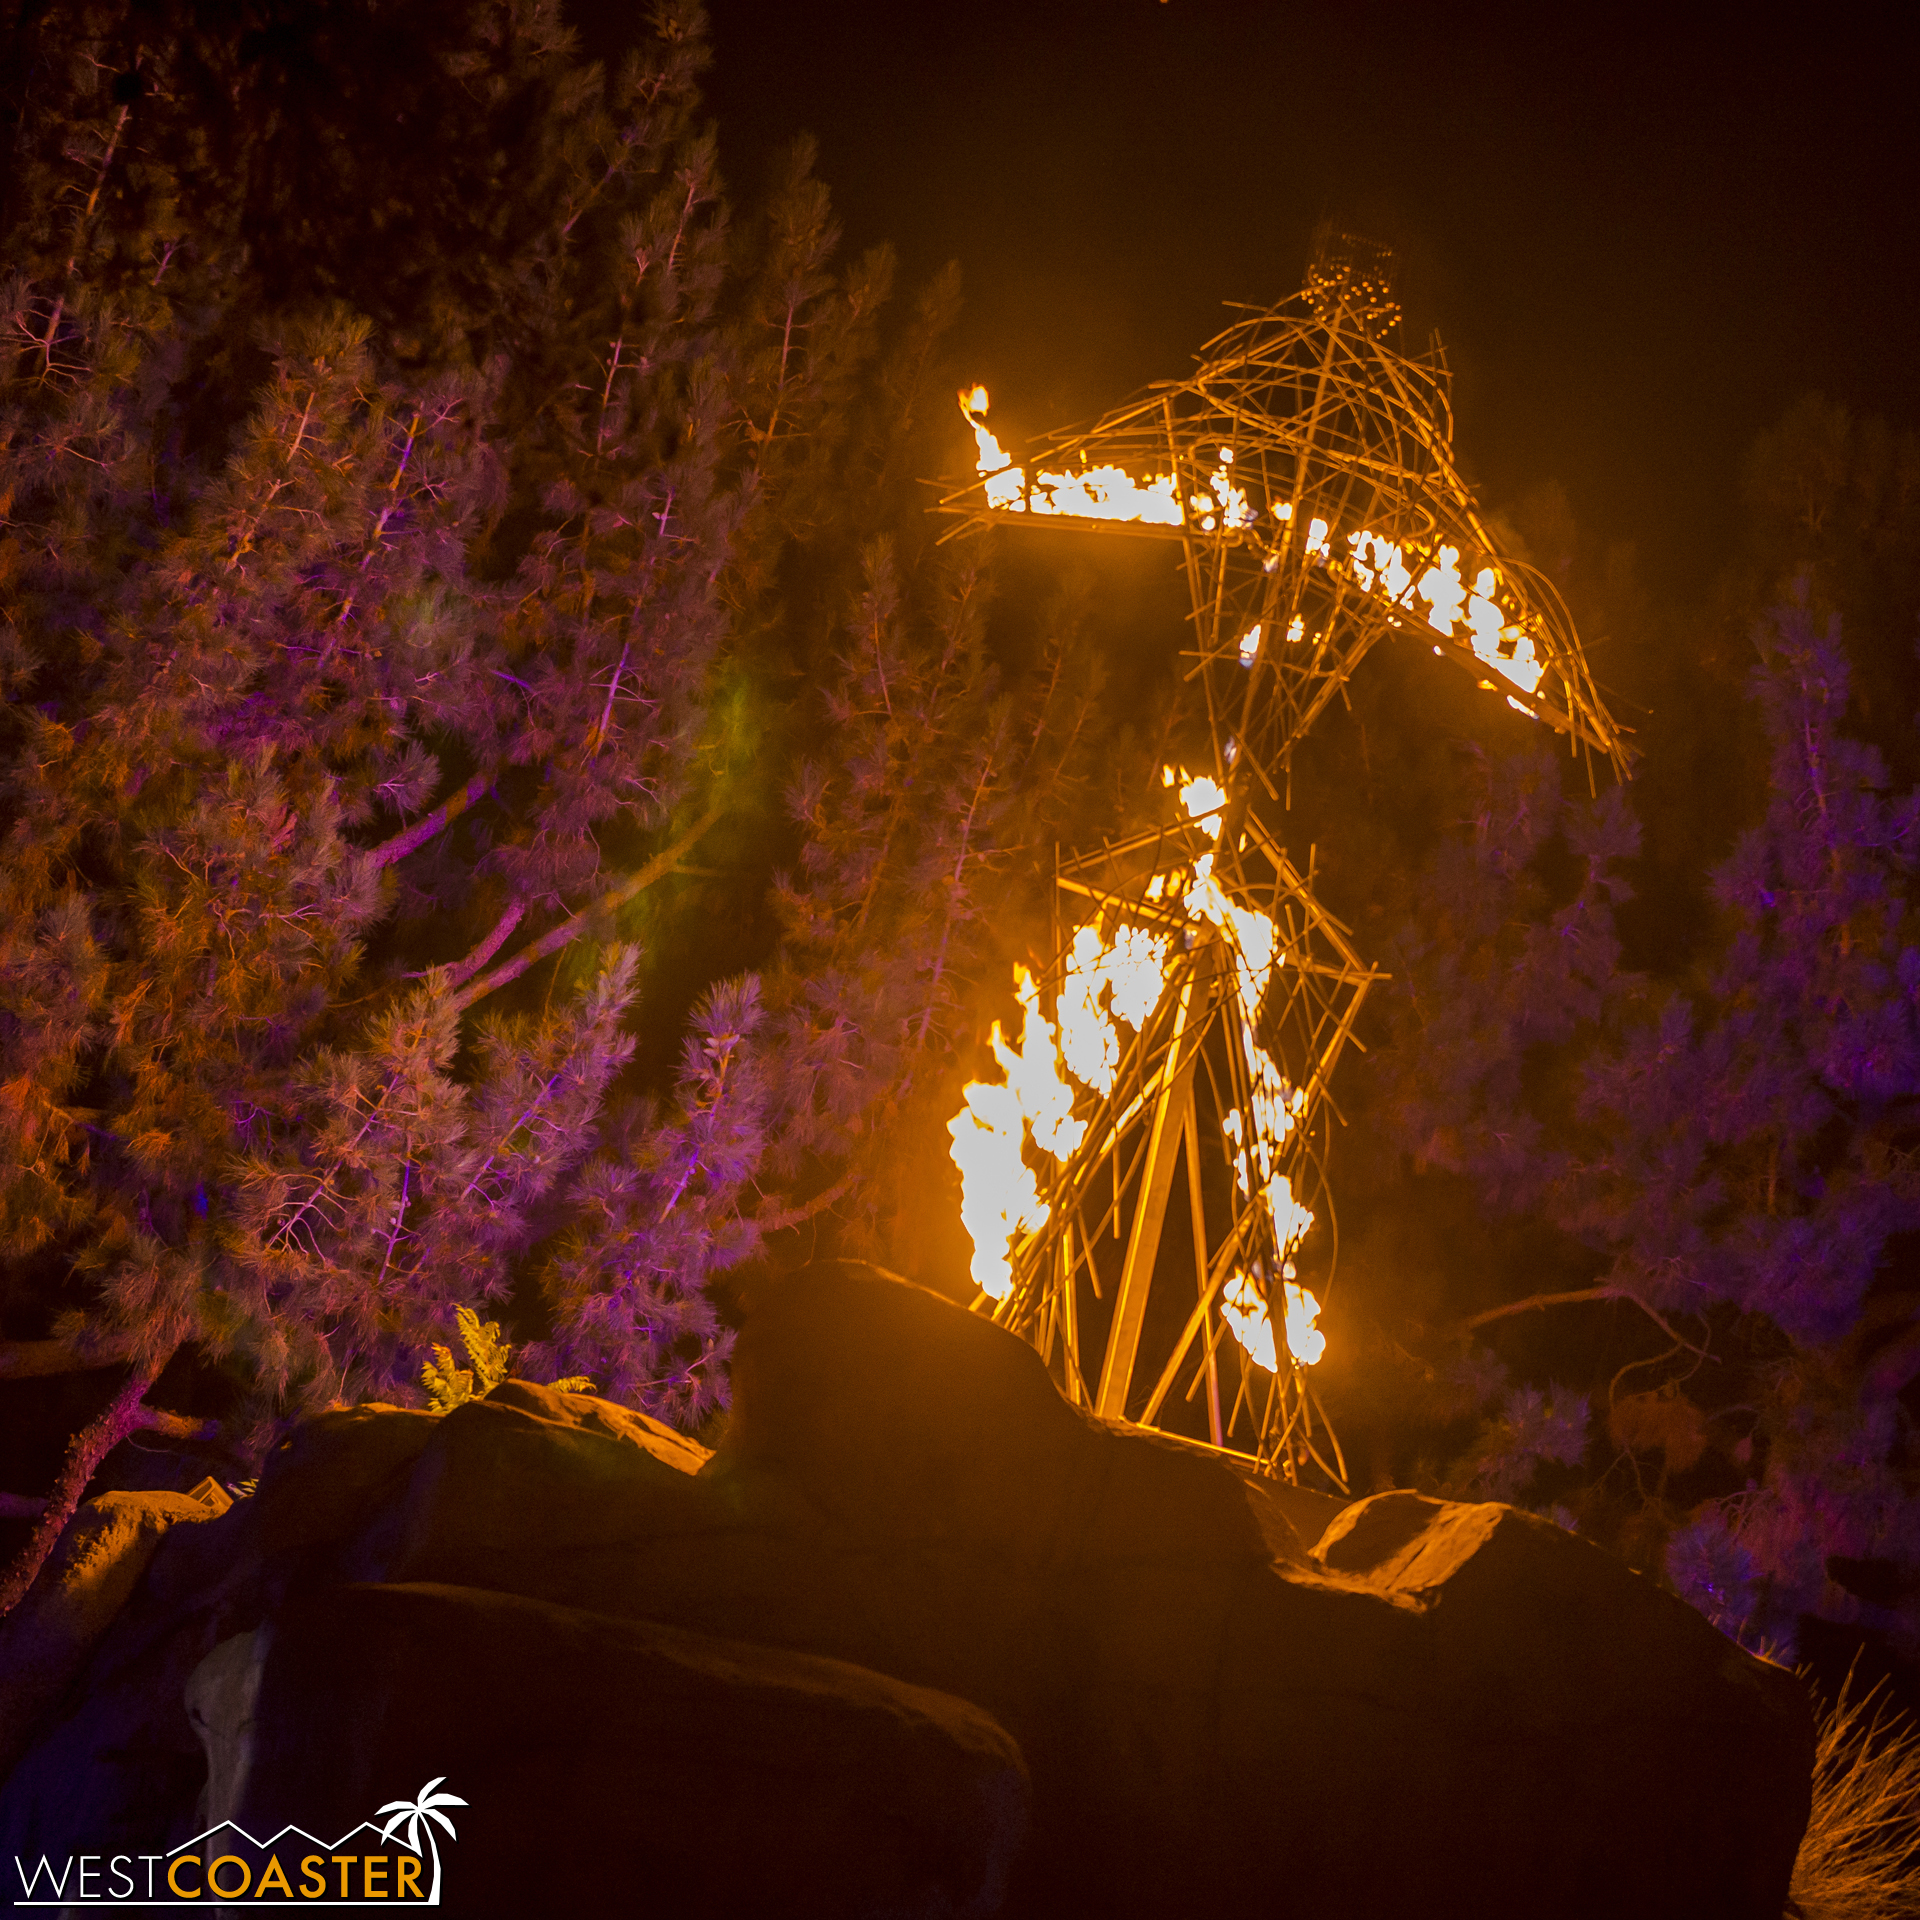 The wicker man bursts into flames as a climactic emphasis on this warning.